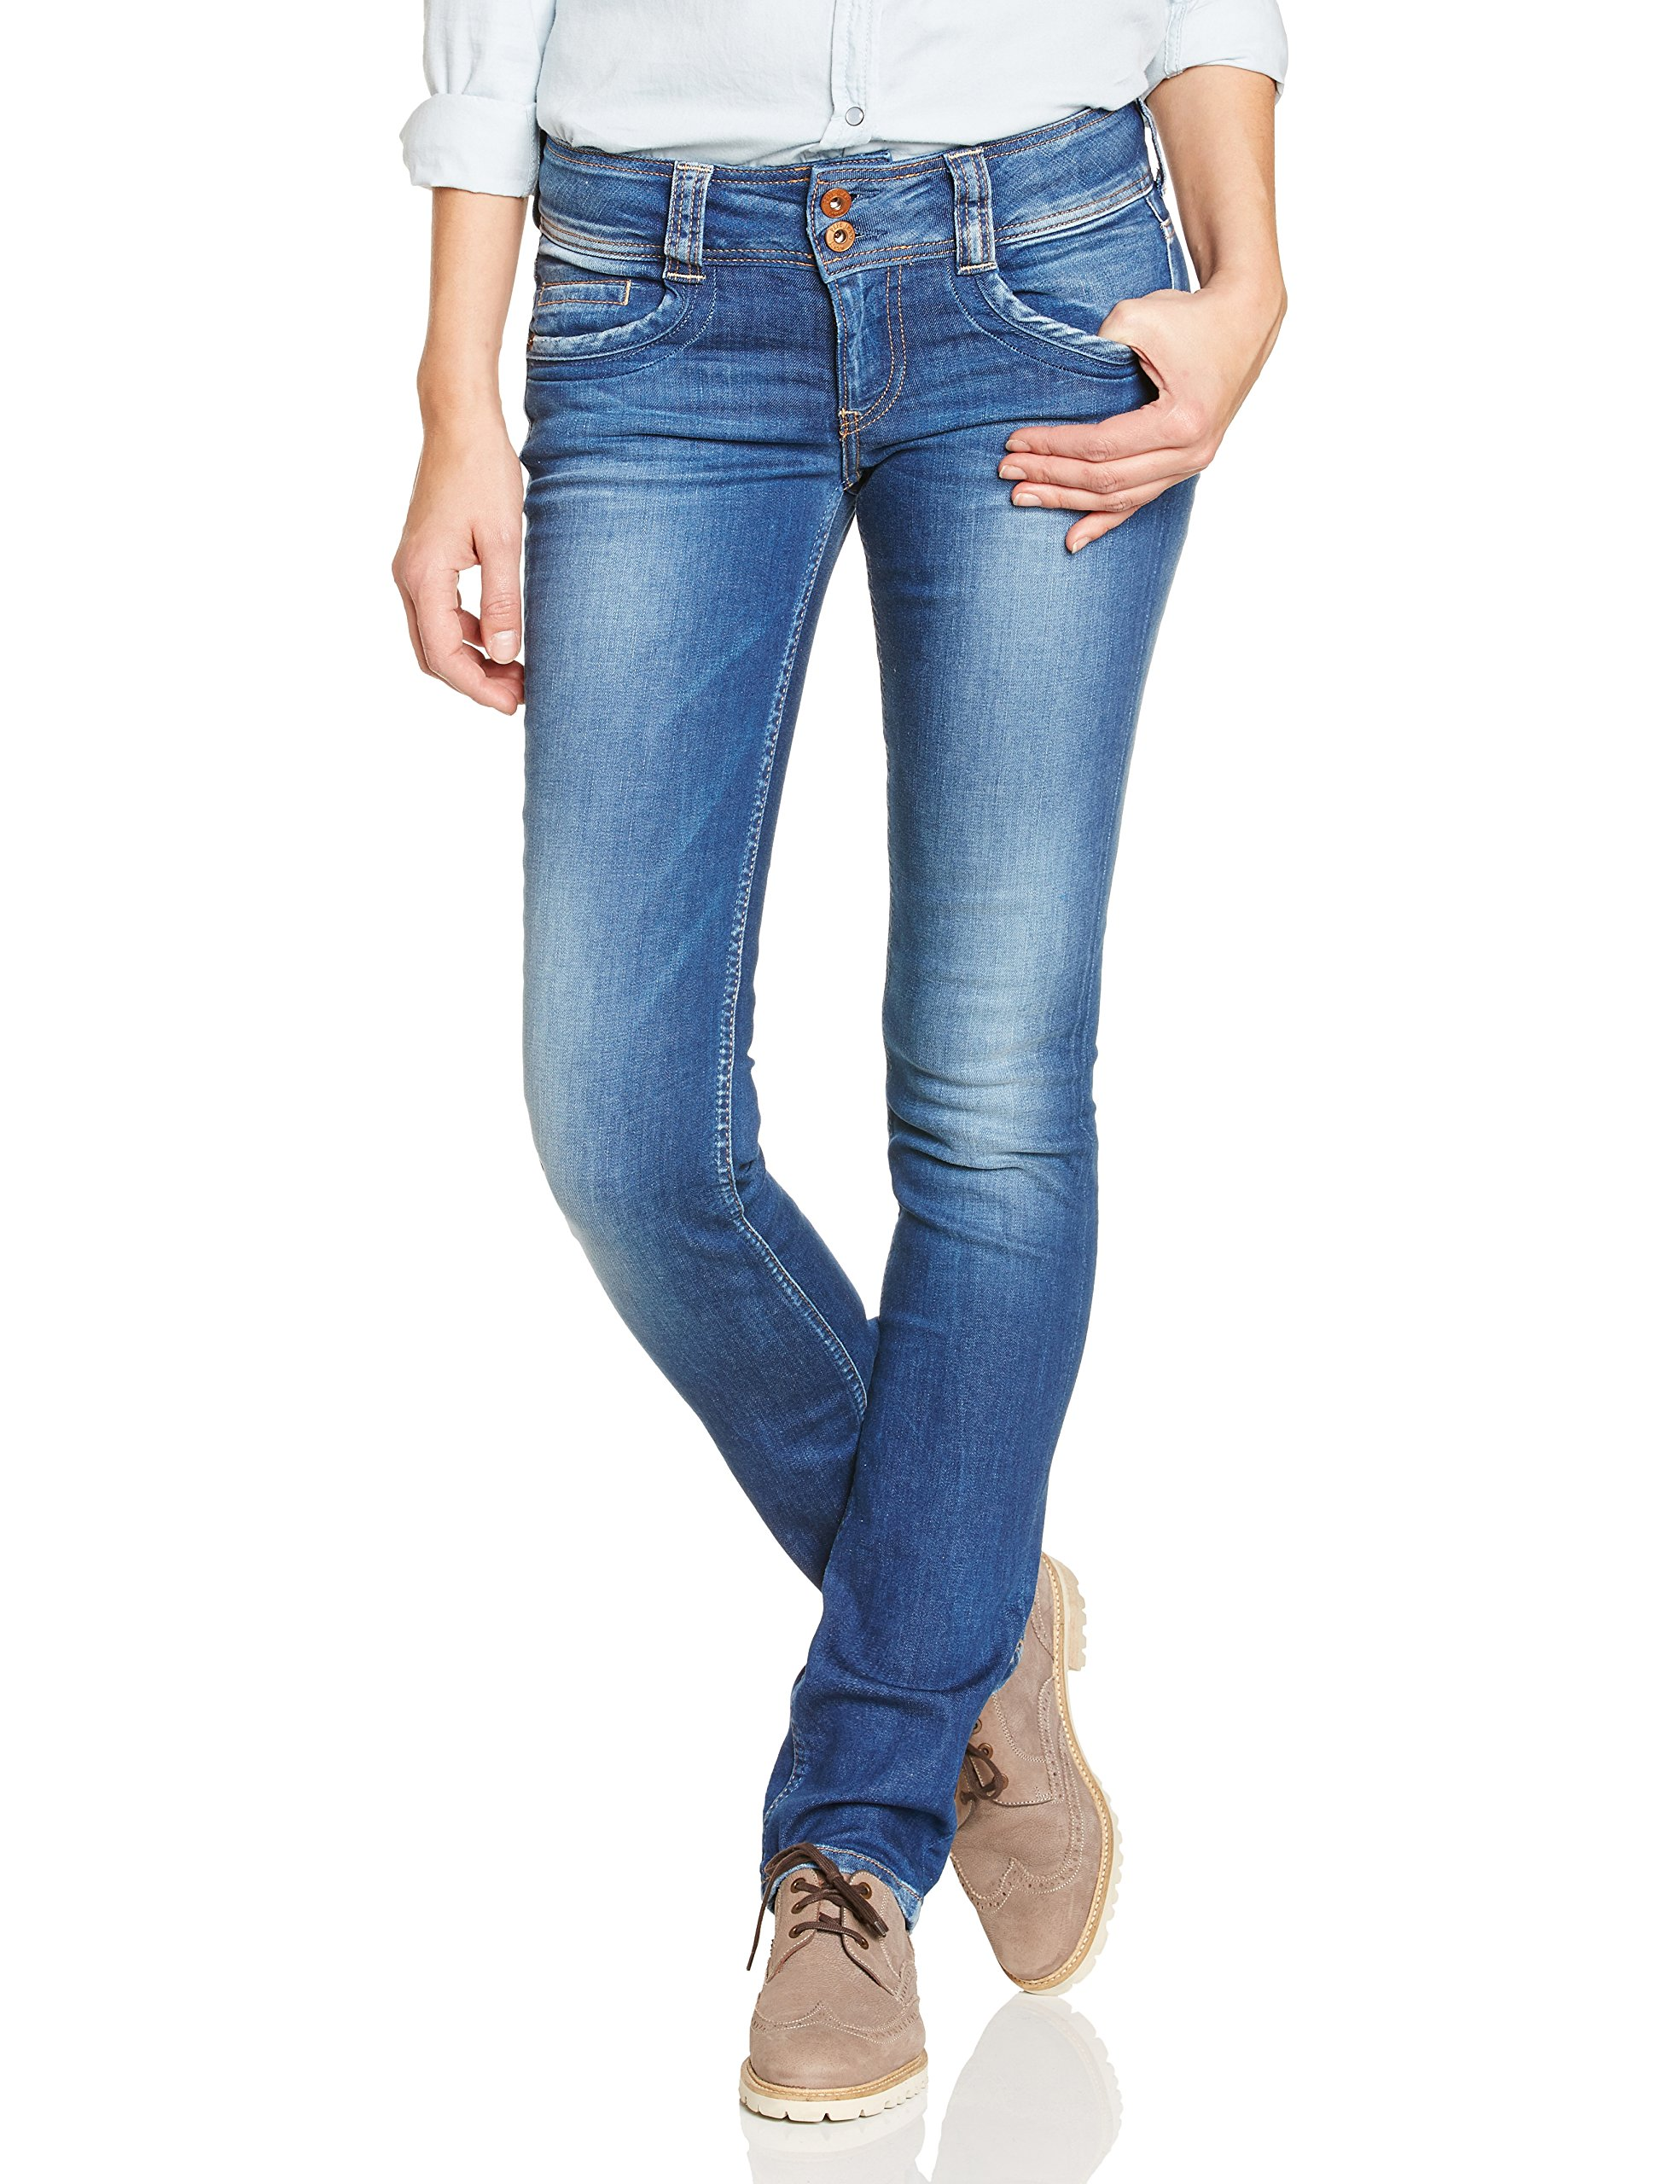 Pepe Jeans Womens Gen Straight Jeans Blue Size 28 Length 32 by Pepe Jeans